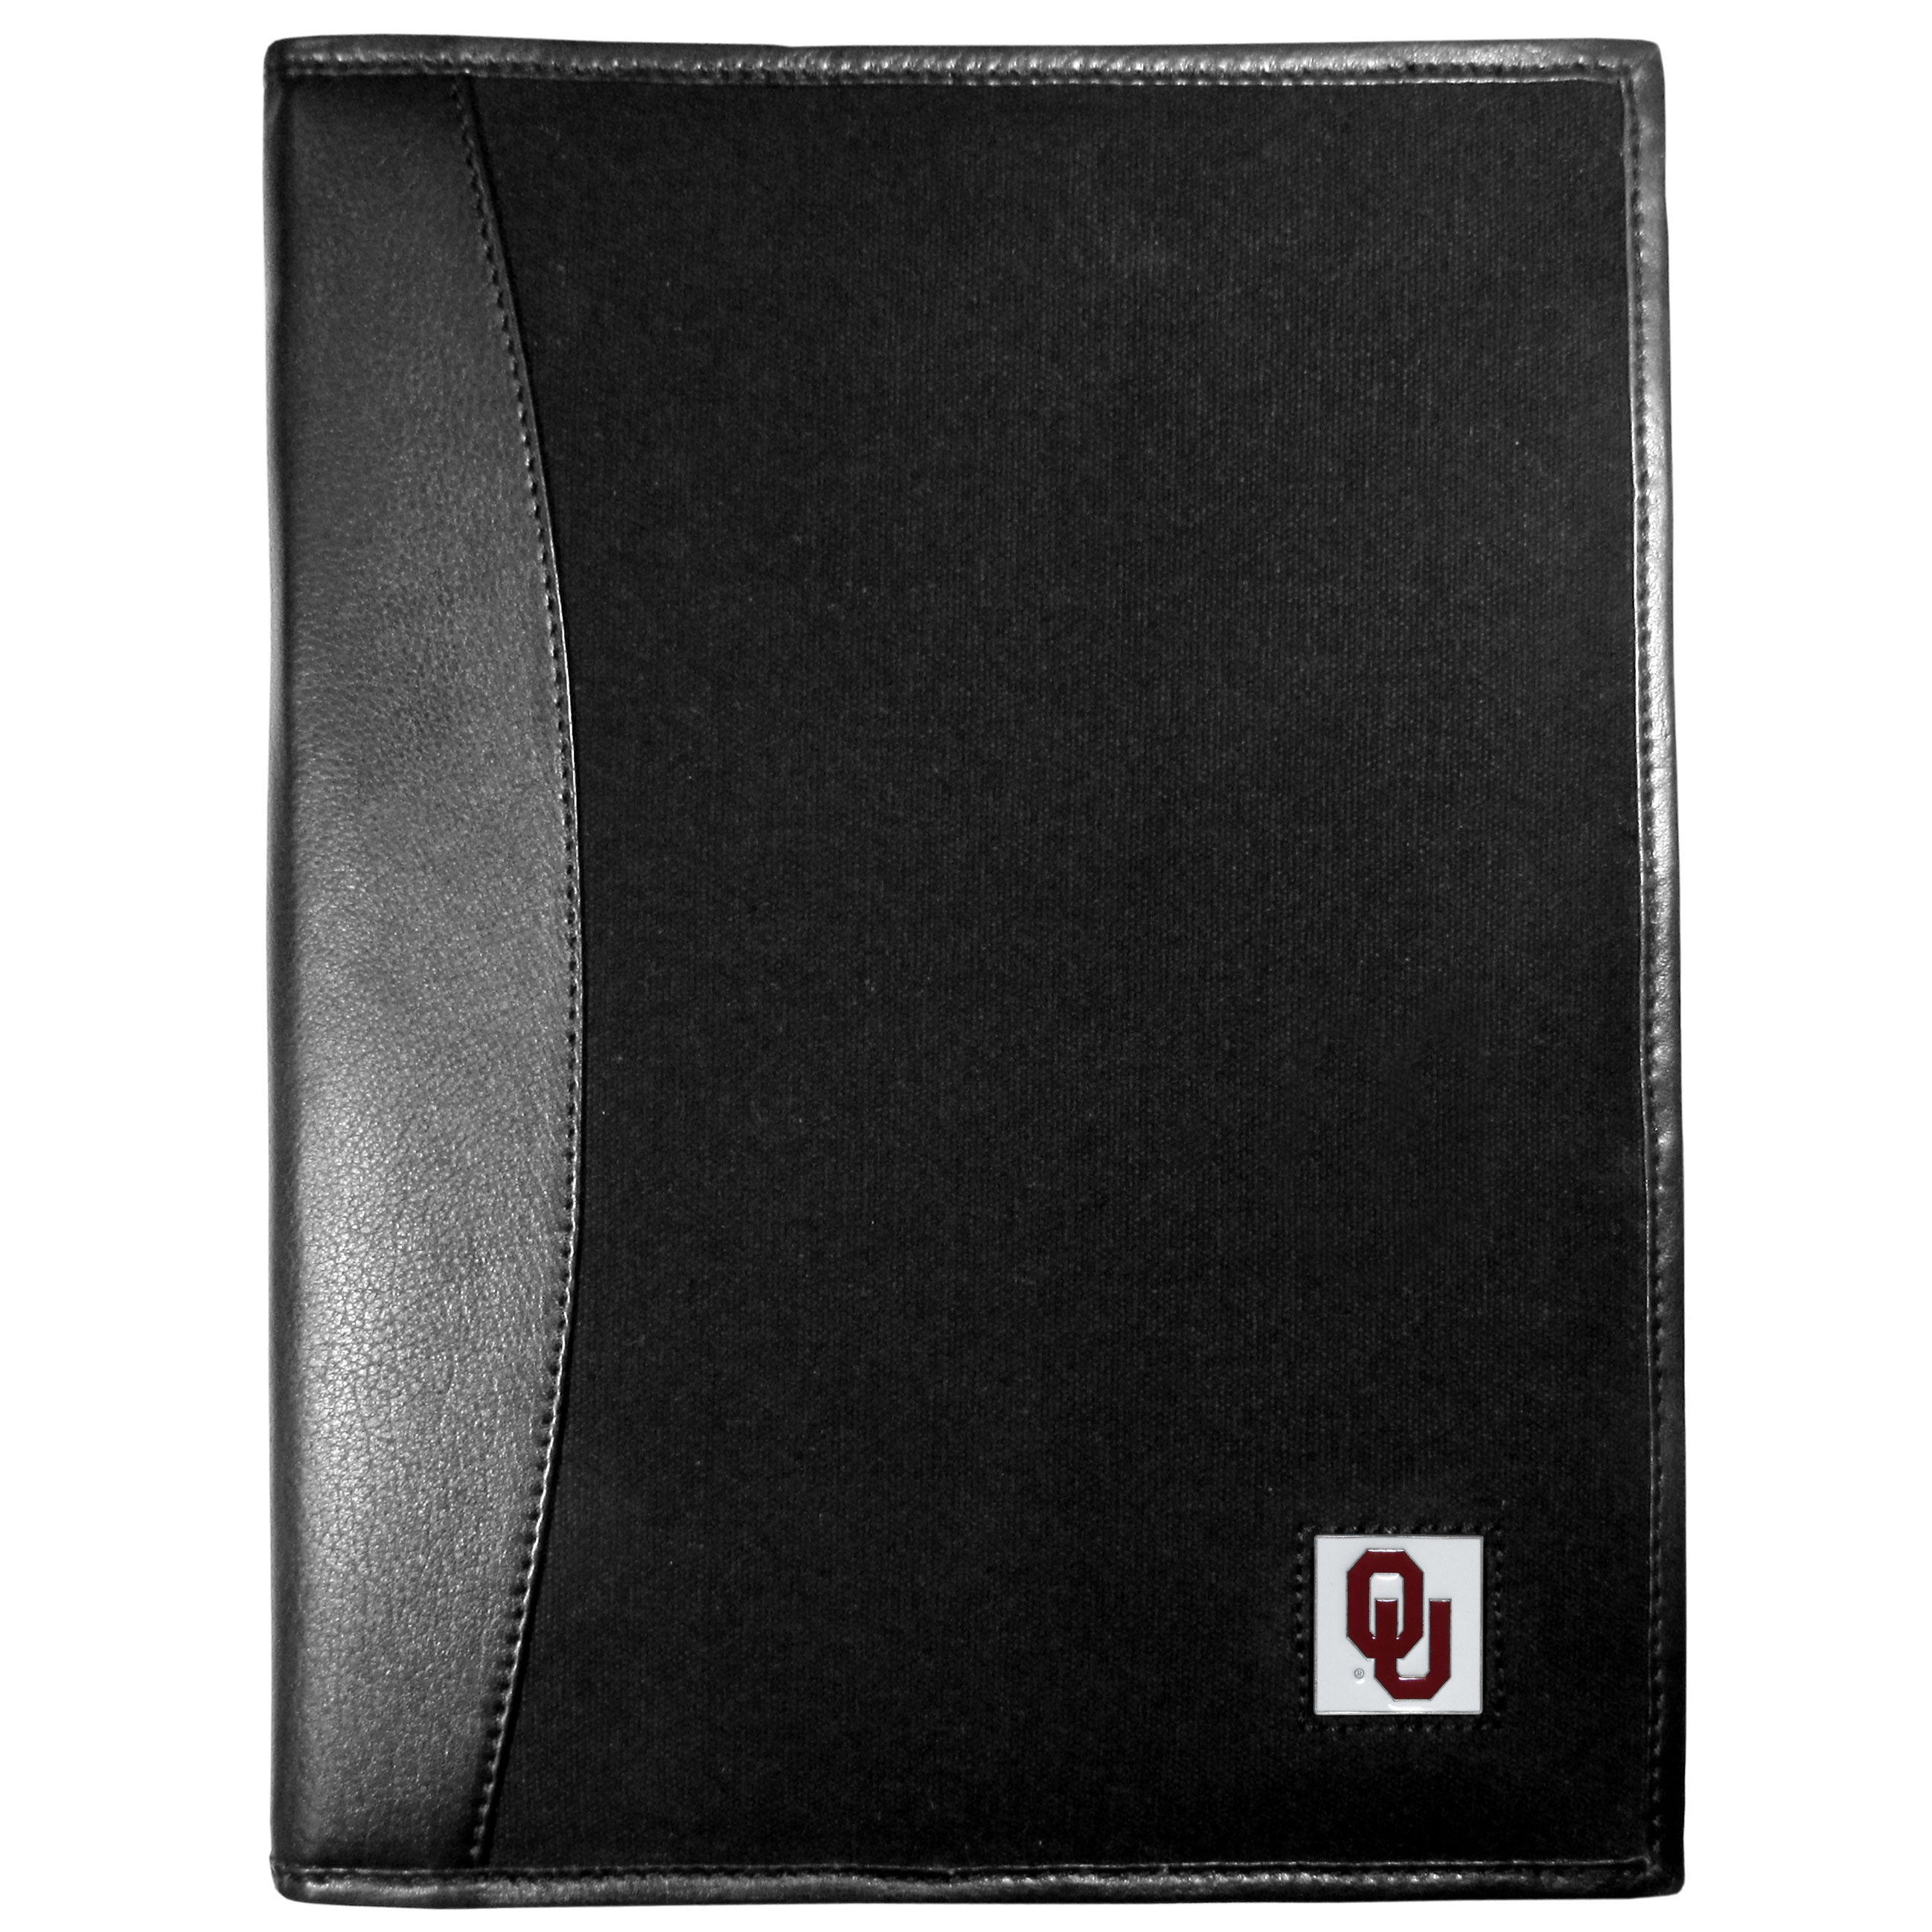 Oklahoma Sooners Leather and Canvas Padfolio - Our leather and canvas padfolio perfectly blends form and function. The attractive portfolio is bound in fine grain leather with an attractive canvas finish and the interior is a soft nylon. This high quality business accessory also features a fully cast metal Oklahoma Sooners emblem that is subtly set in the corner of the organizer. It is packed with features like 6 card slots for badges, business cards, hotel keys or credit cards and ID with a large pocket for loose papers and a writing tablet slot making it a must-have for the professional on the go.